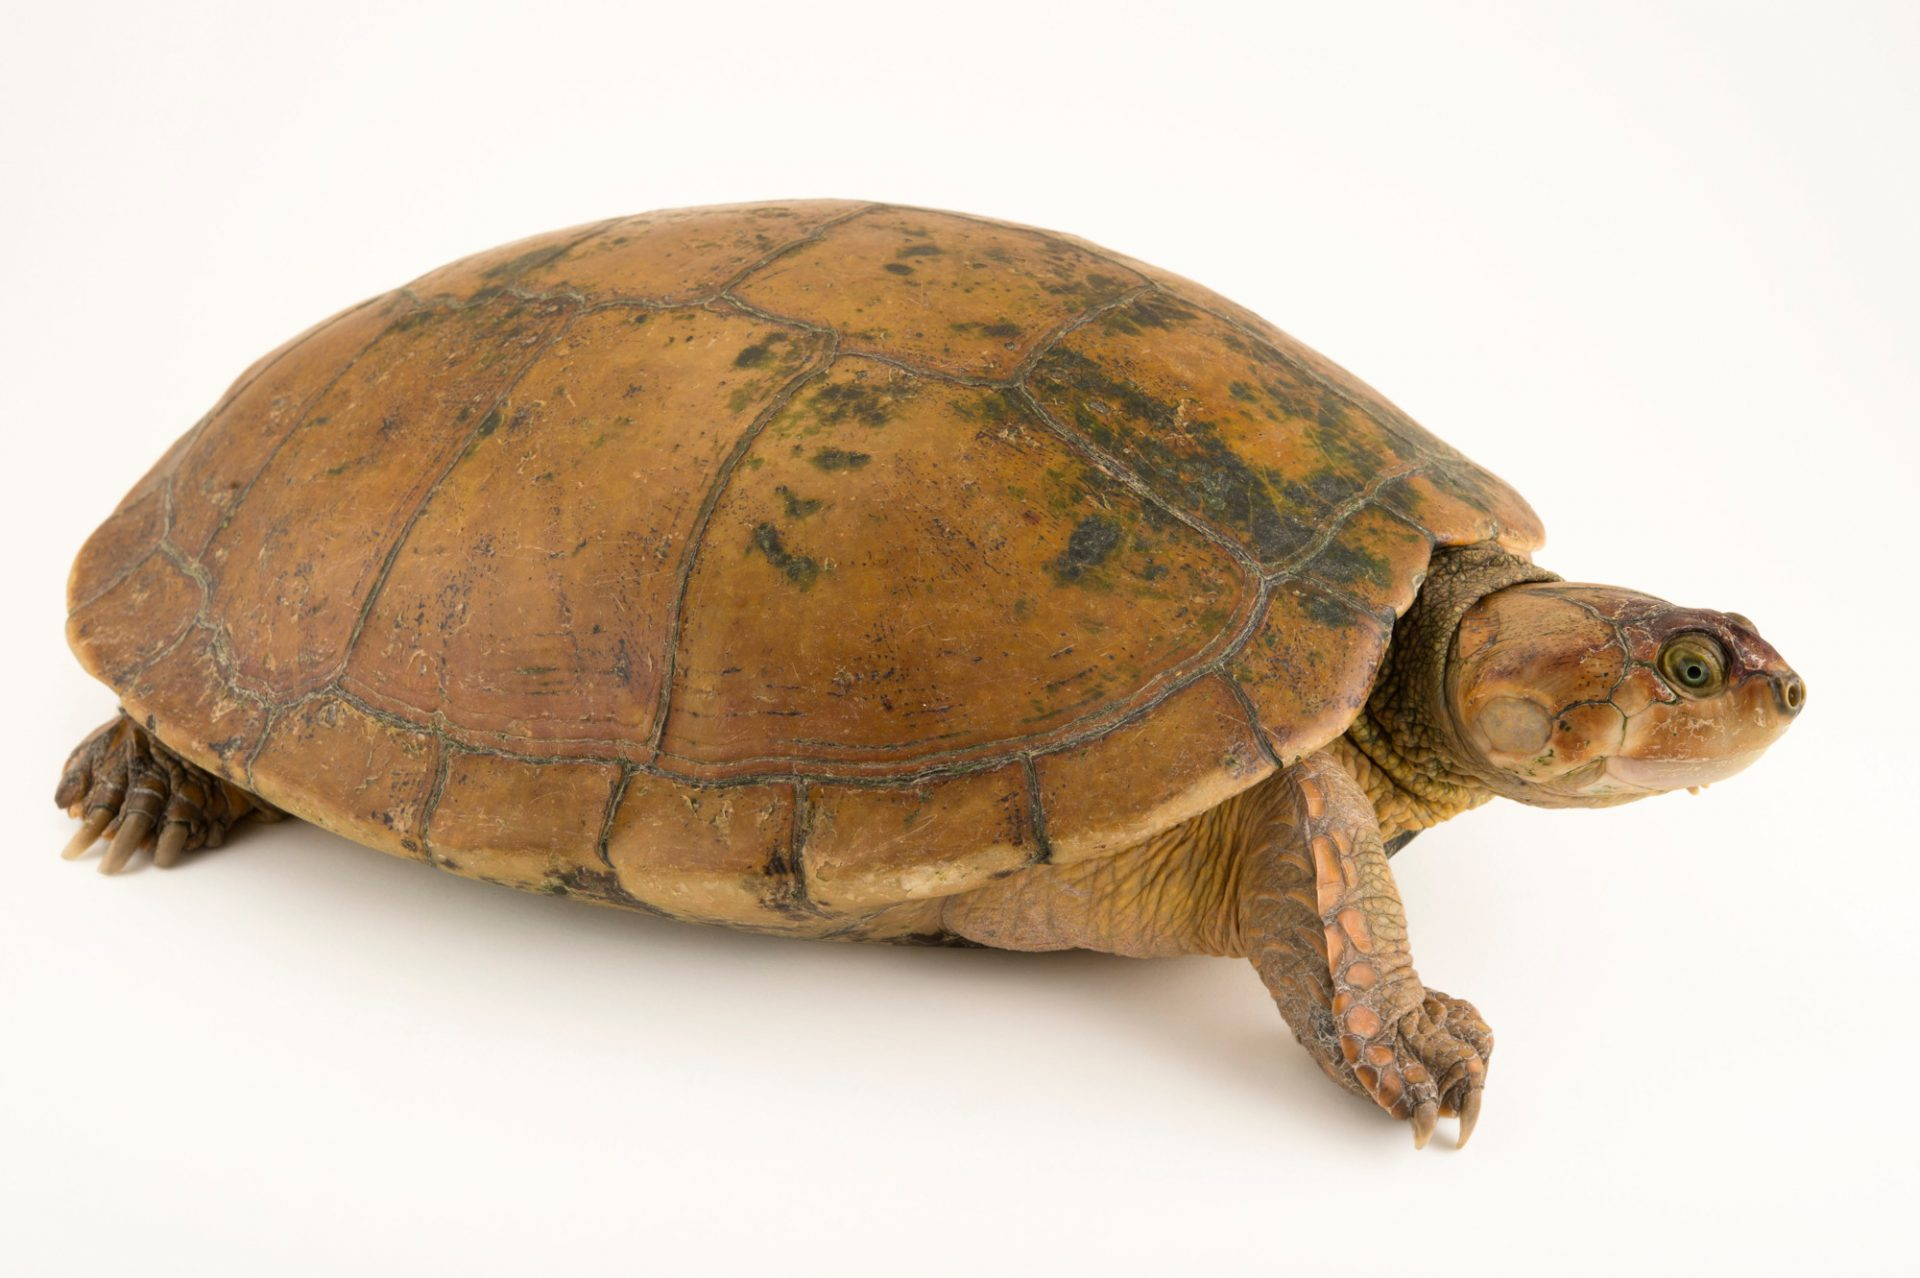 Photo: The Magdalena River turtle or Rio Magdalena river turtle (Podocnemis lewyana) at Cafam Zoo in Melgar, Colombia.